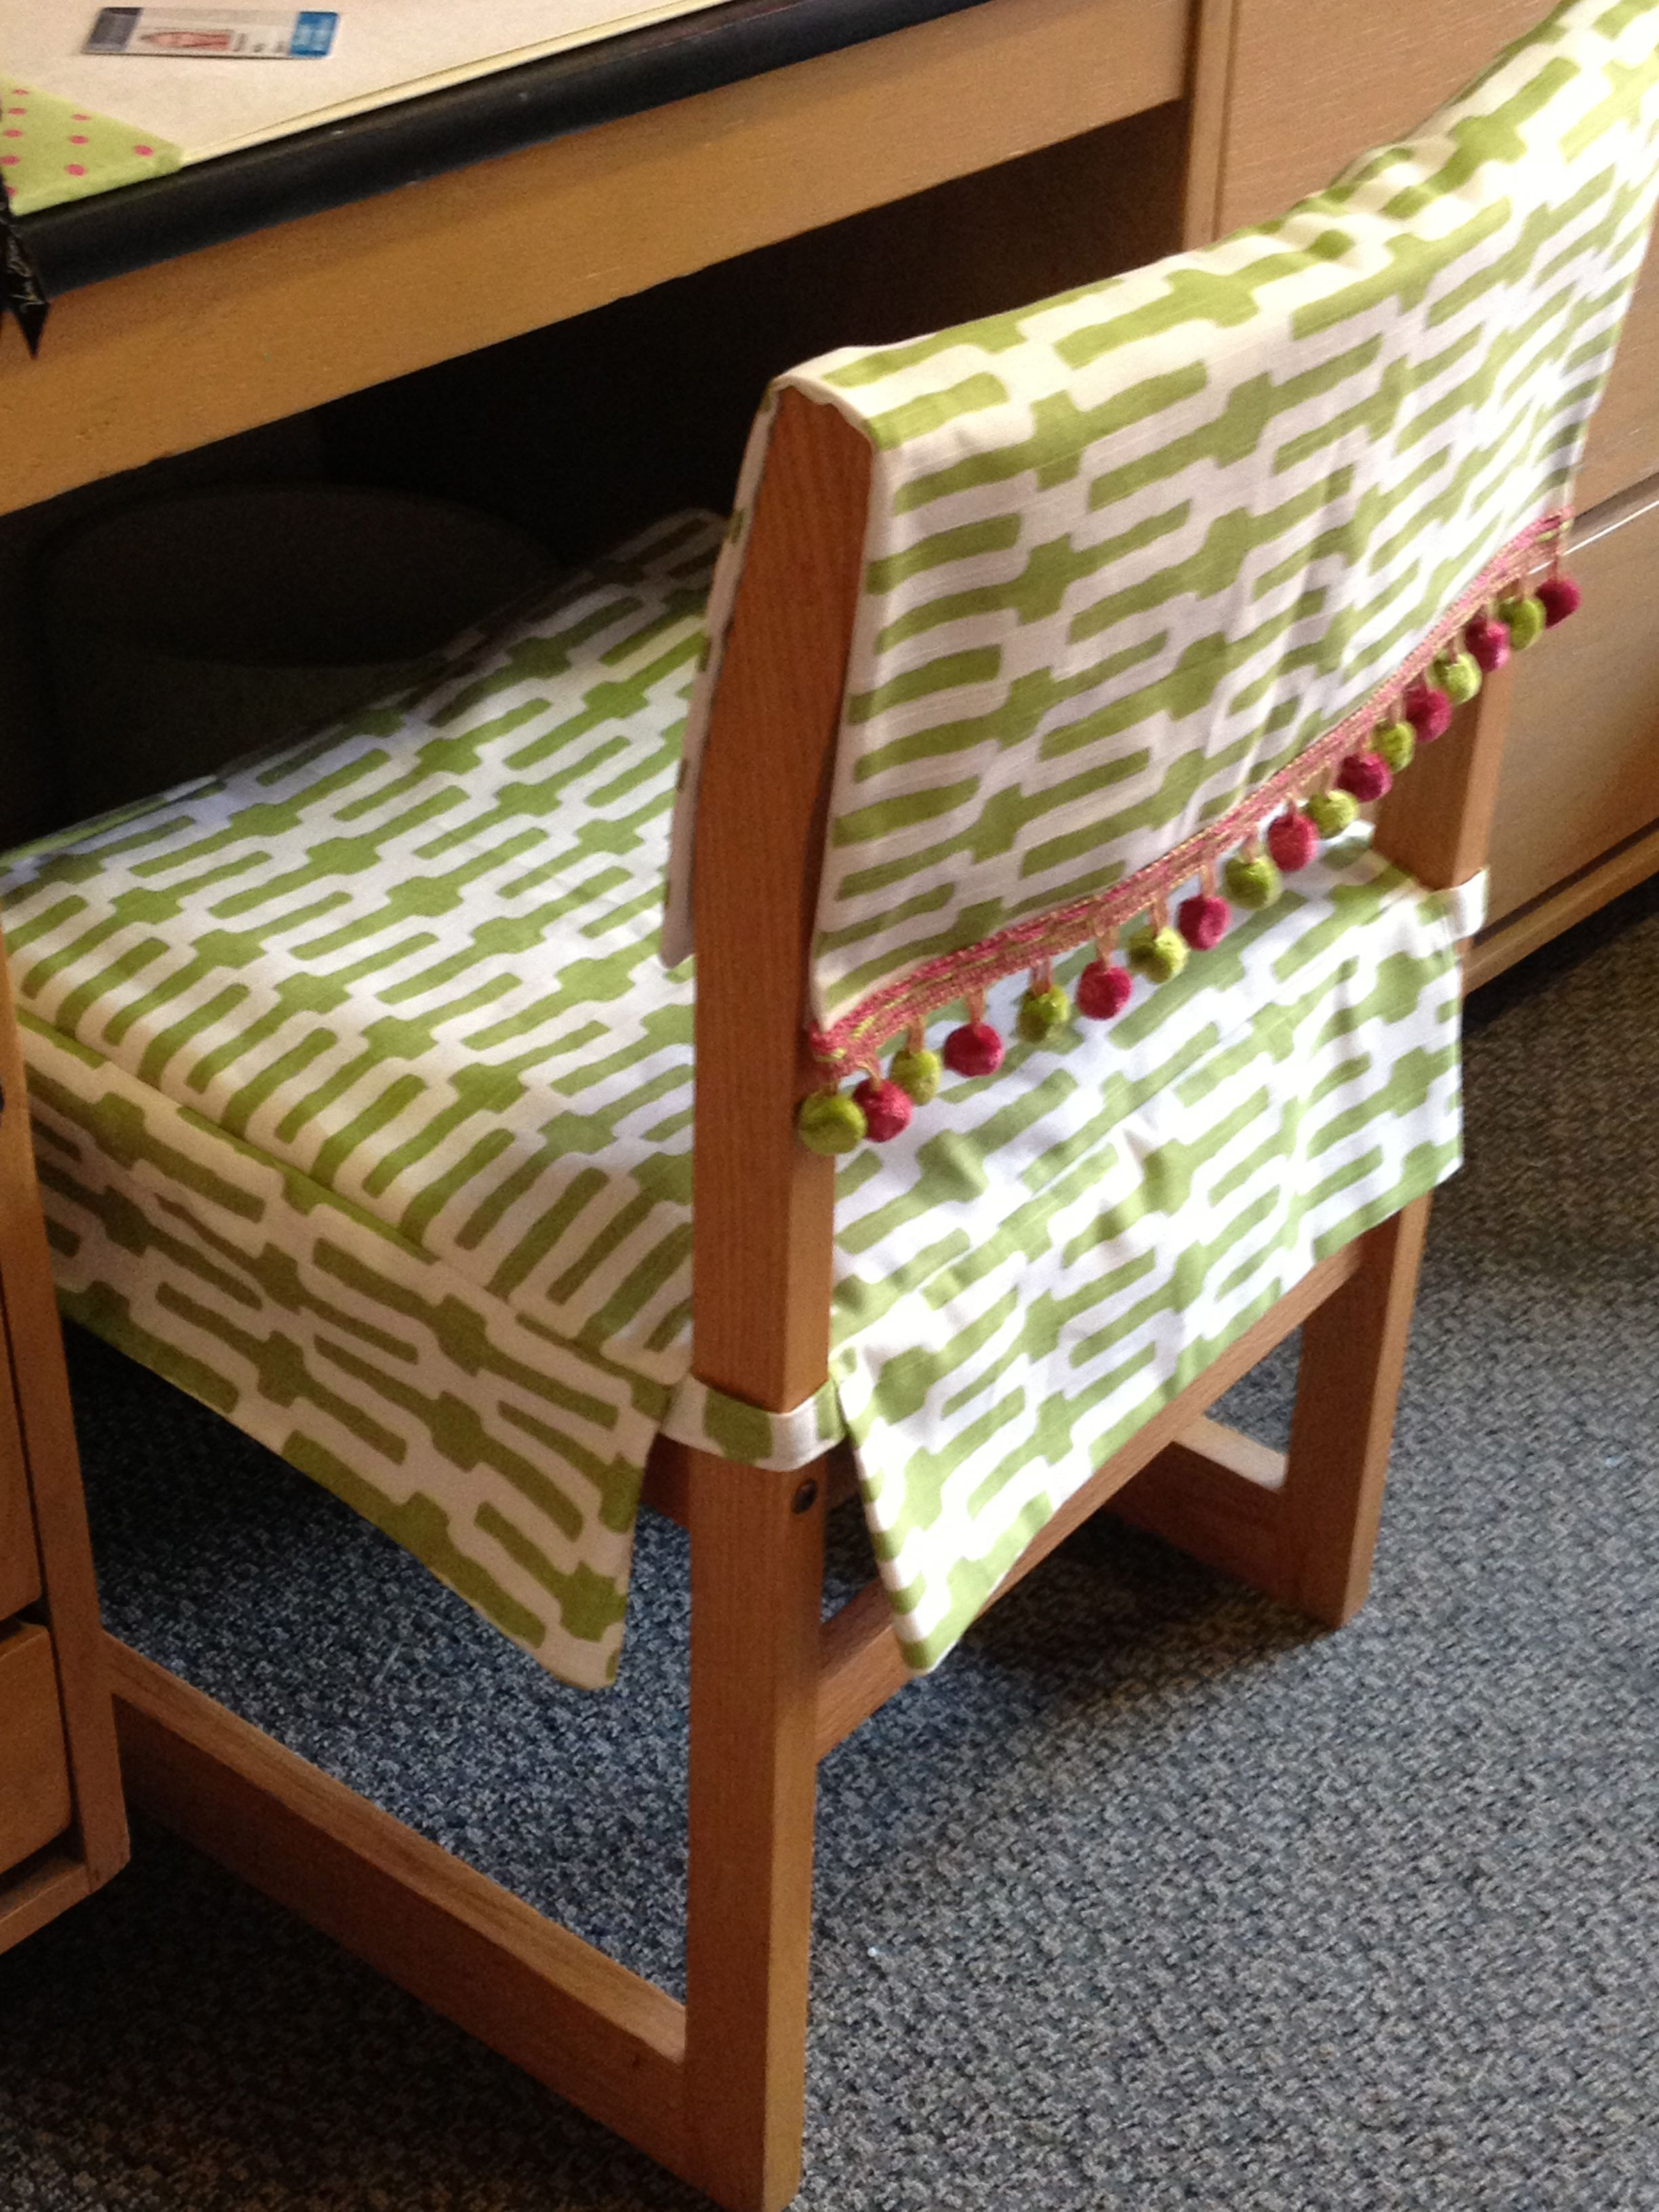 My Roommate S Mom Made Us These Awesome Desk Chair Covers